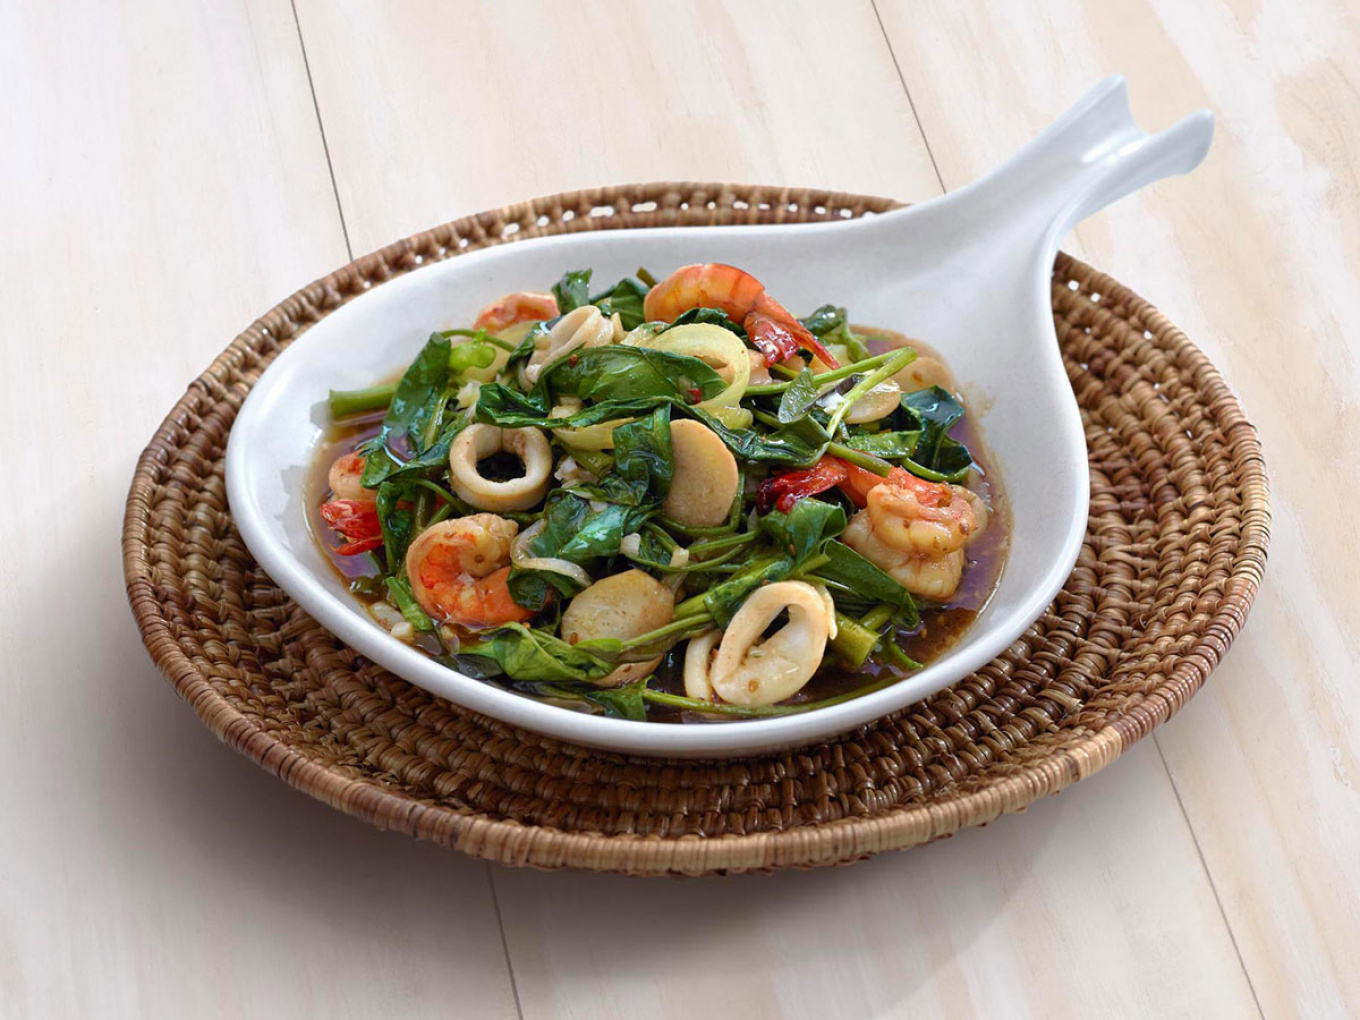 Sautéed Water Spinach and Seafood with Japanese Soy Sauce